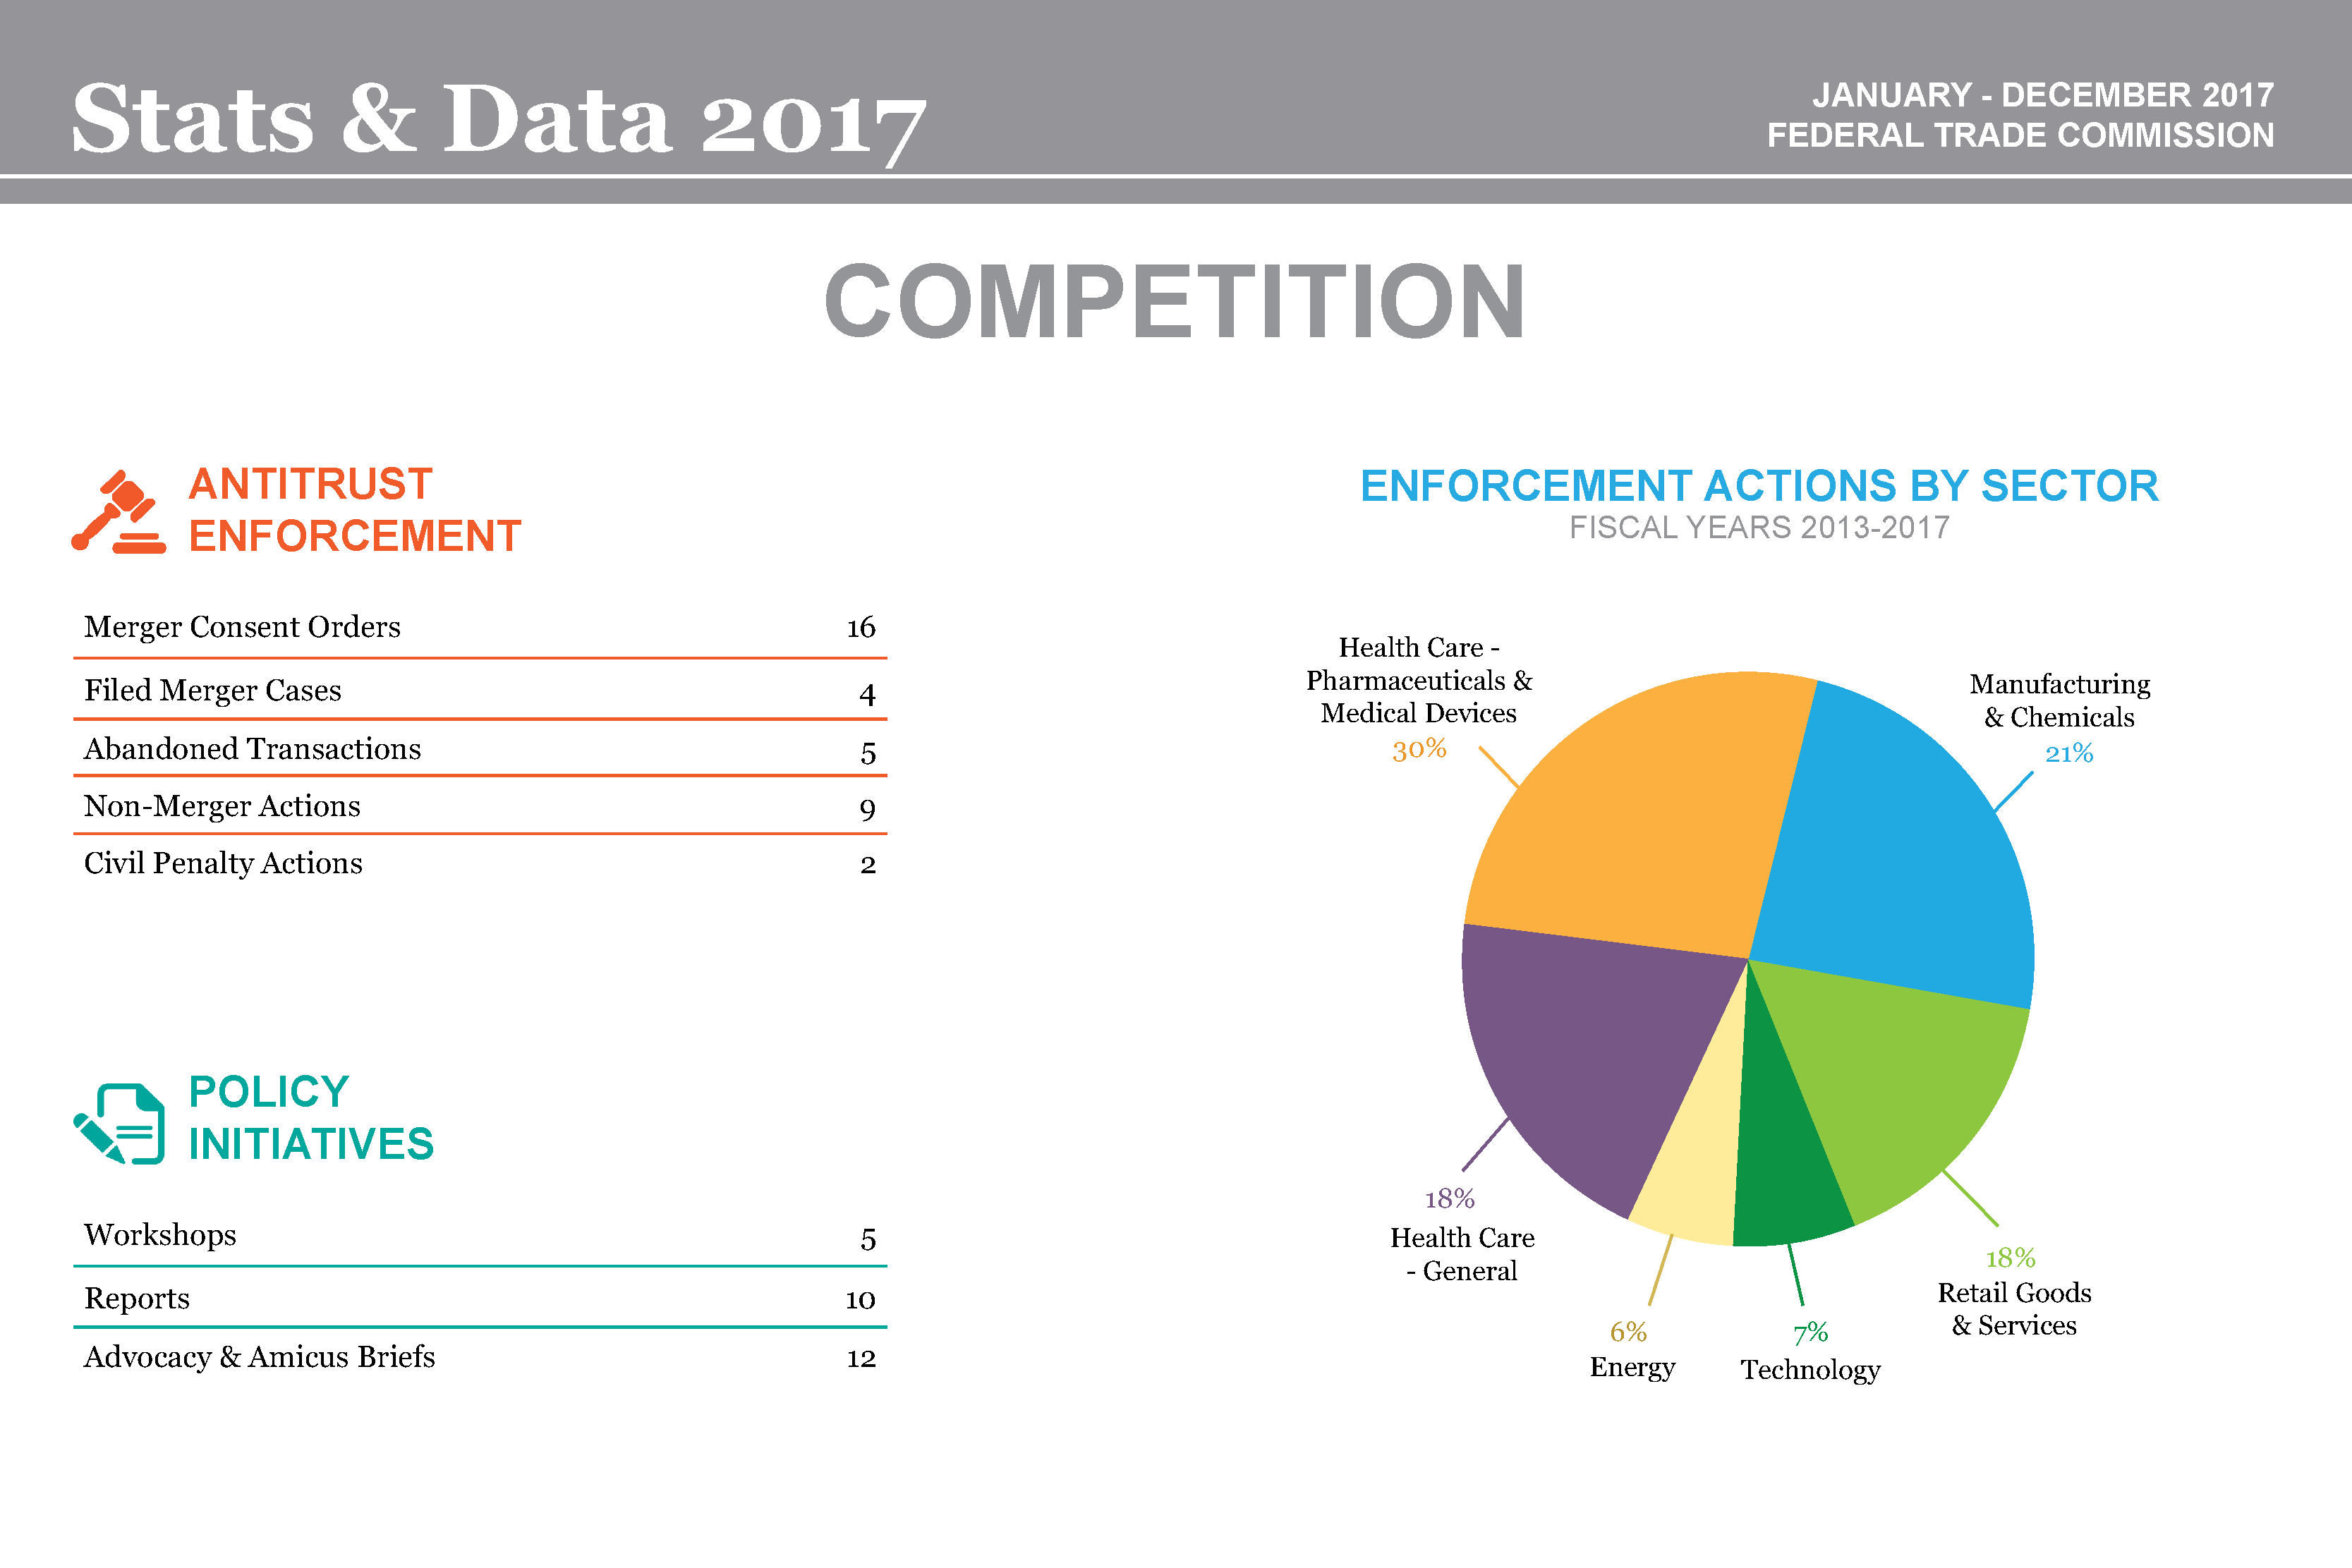 Stats & Data 2017 Competition infographic